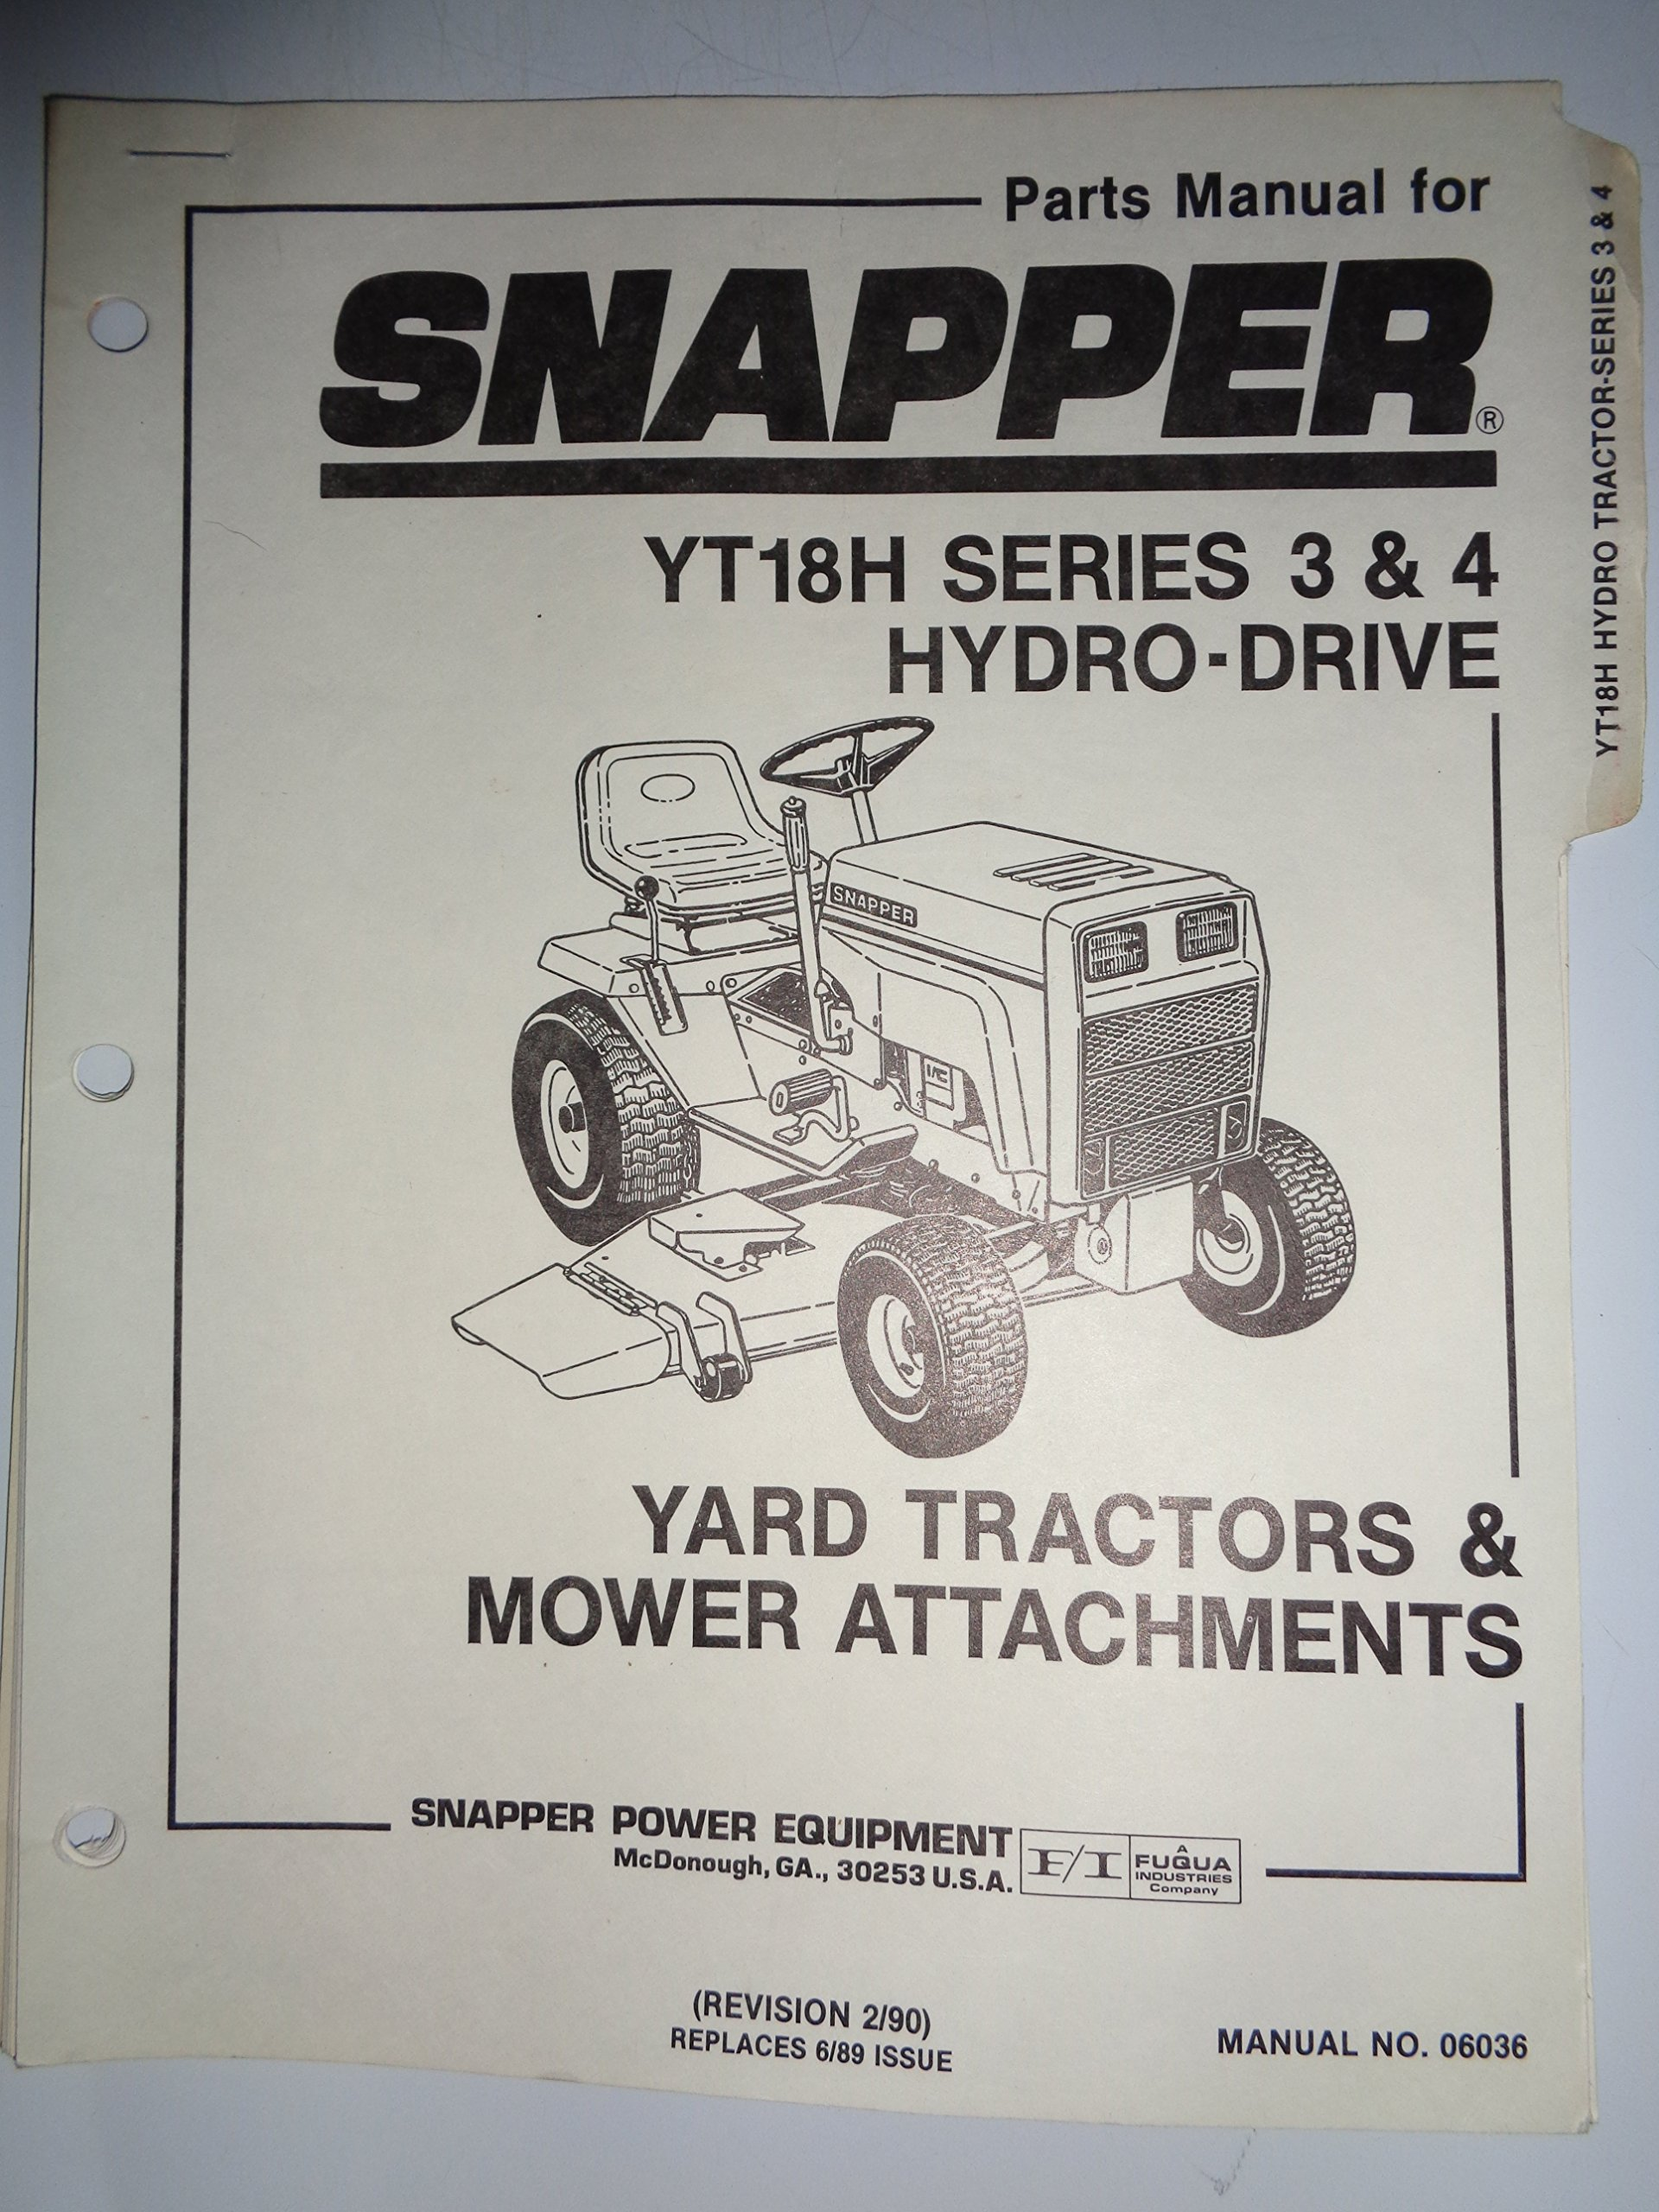 Snapper Series 3 And 4 Model Yt18h Lawn Garden Tractor Parts Diagram Catalog Book Manual 2 90 Books